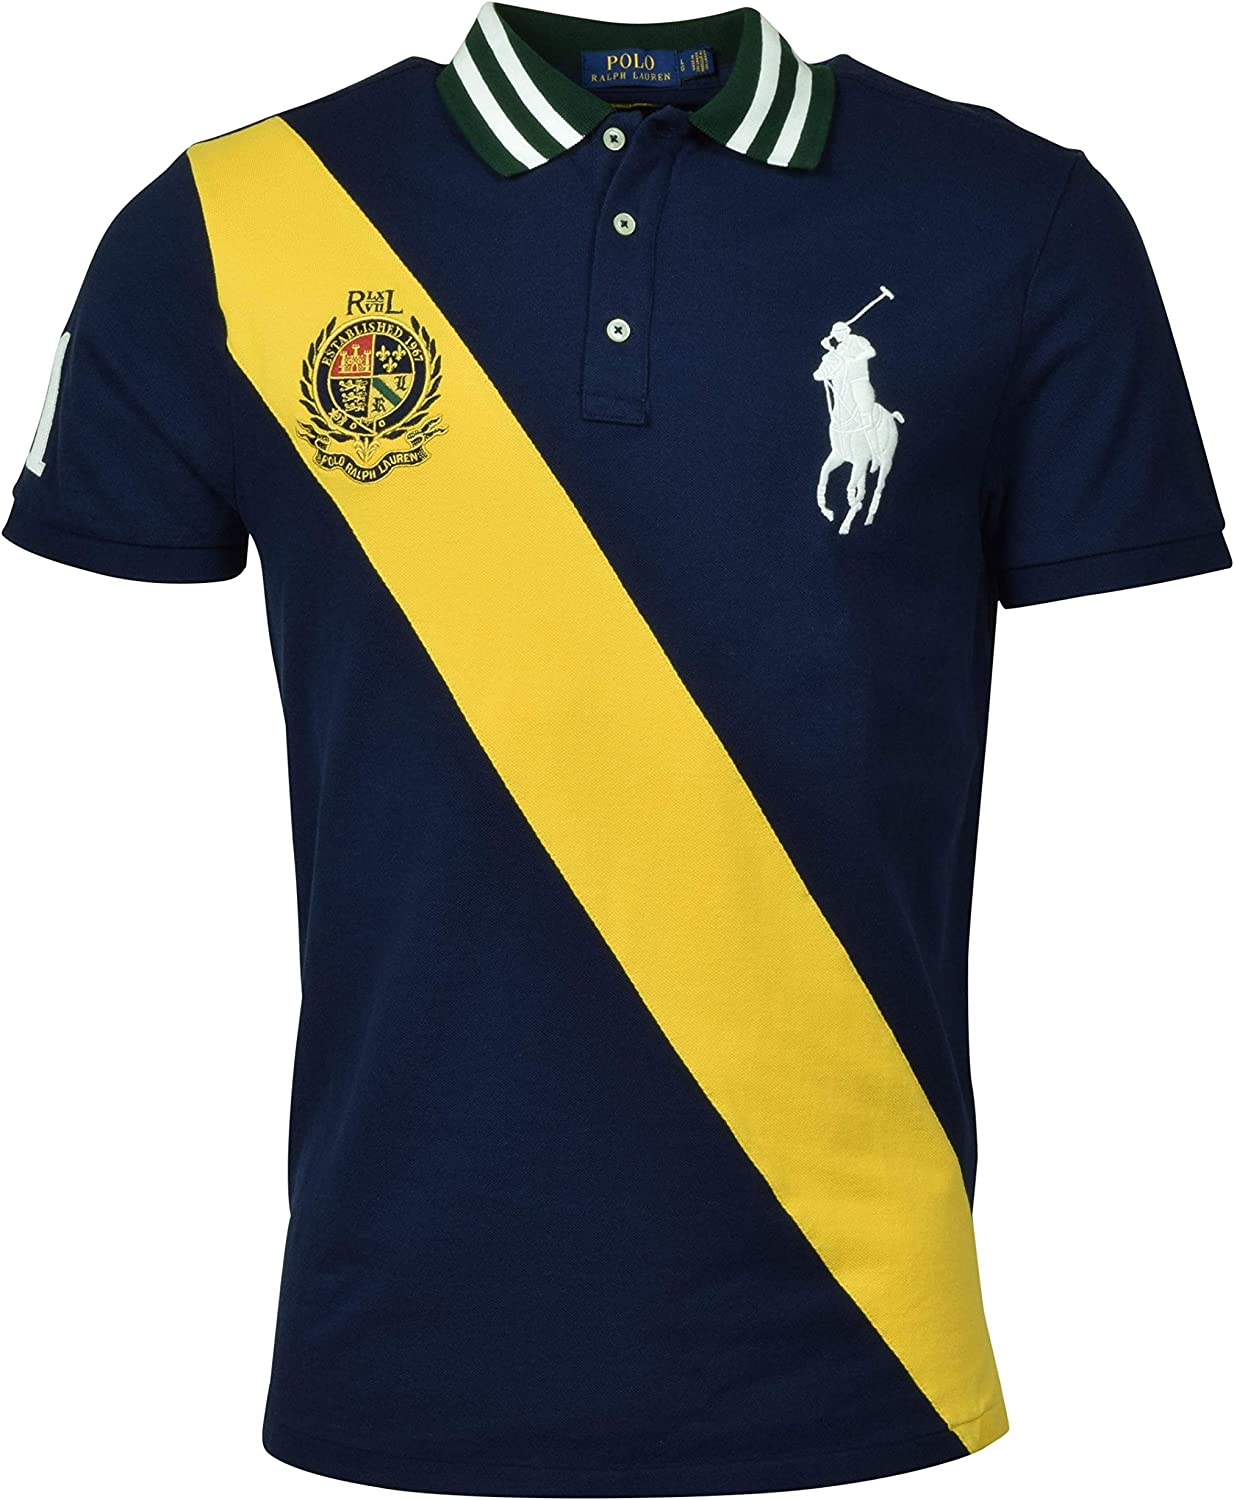 POLO RALPH LAUREN Mens Big Pony mesh Custom Slim Fit Three Button Crest Polo